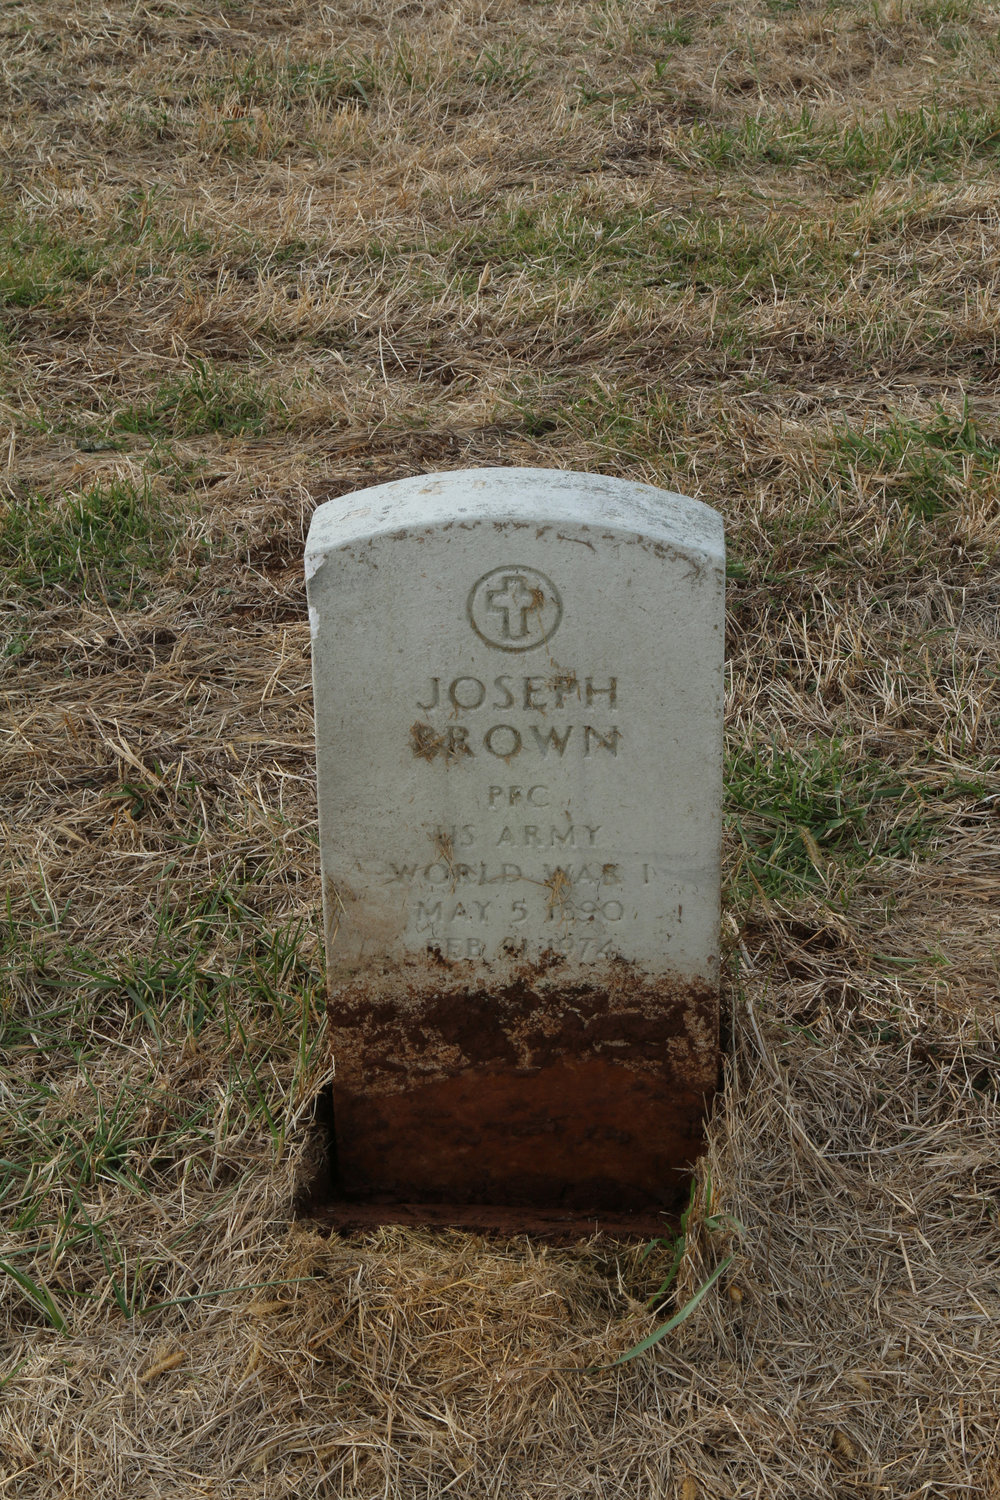 Pfc. Joseph Brown